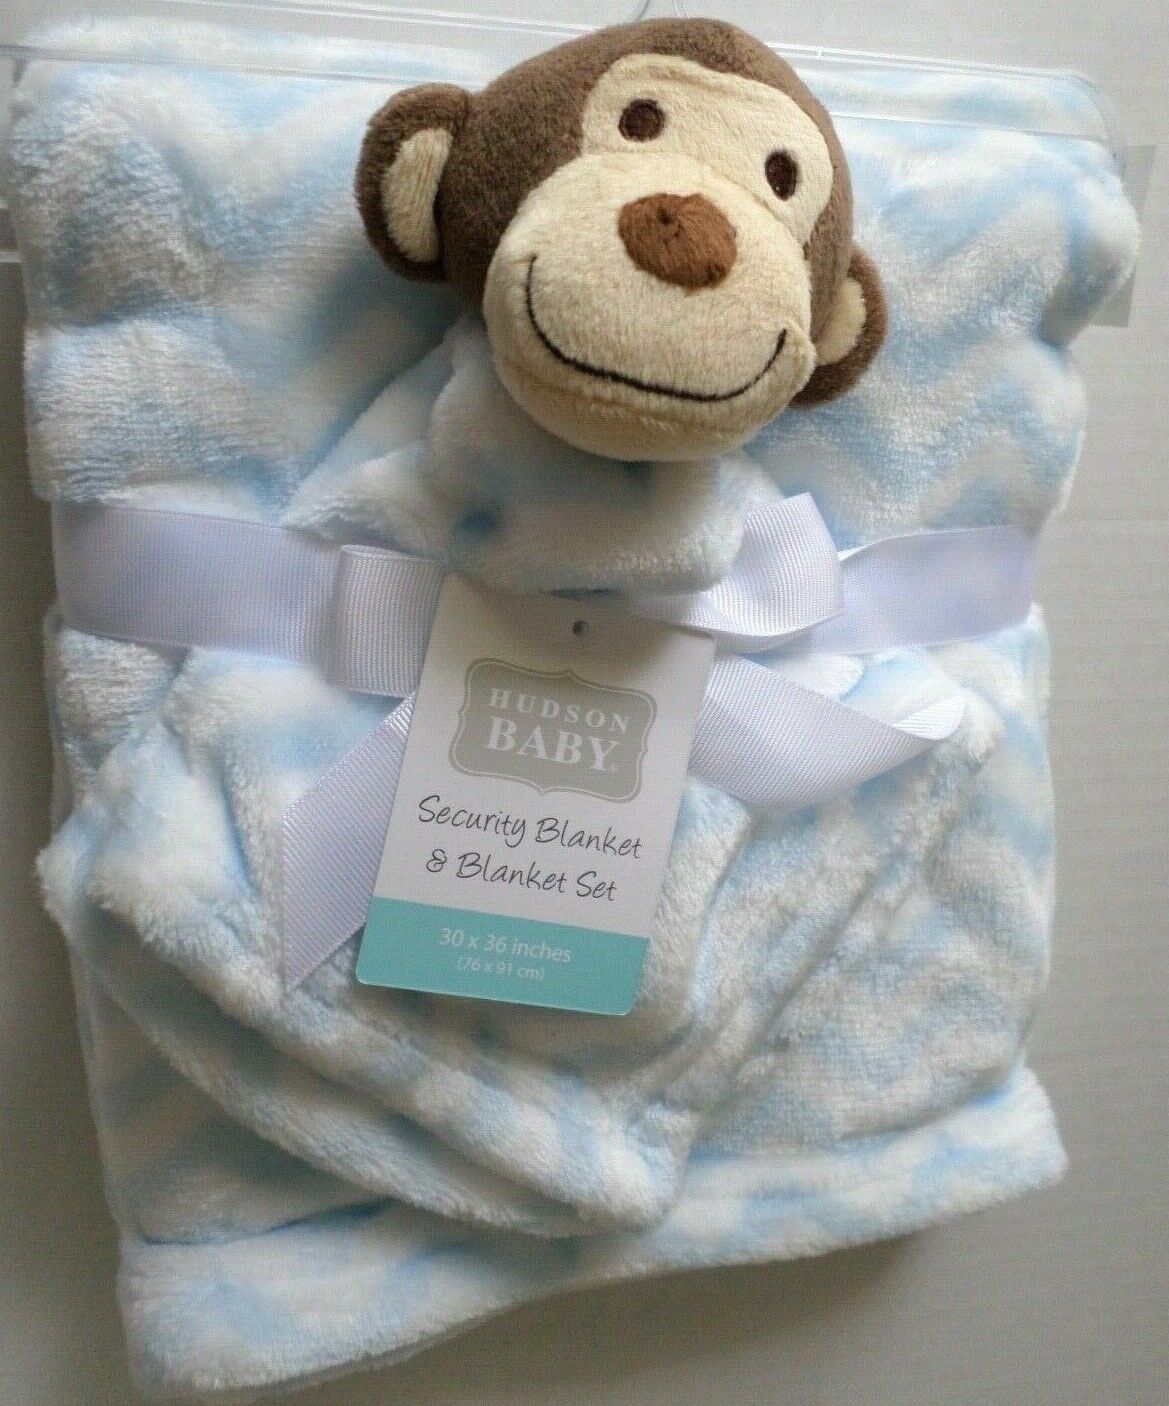 Hudson Baby Plush Security Blanket Set, Monkey by Hudson Bab